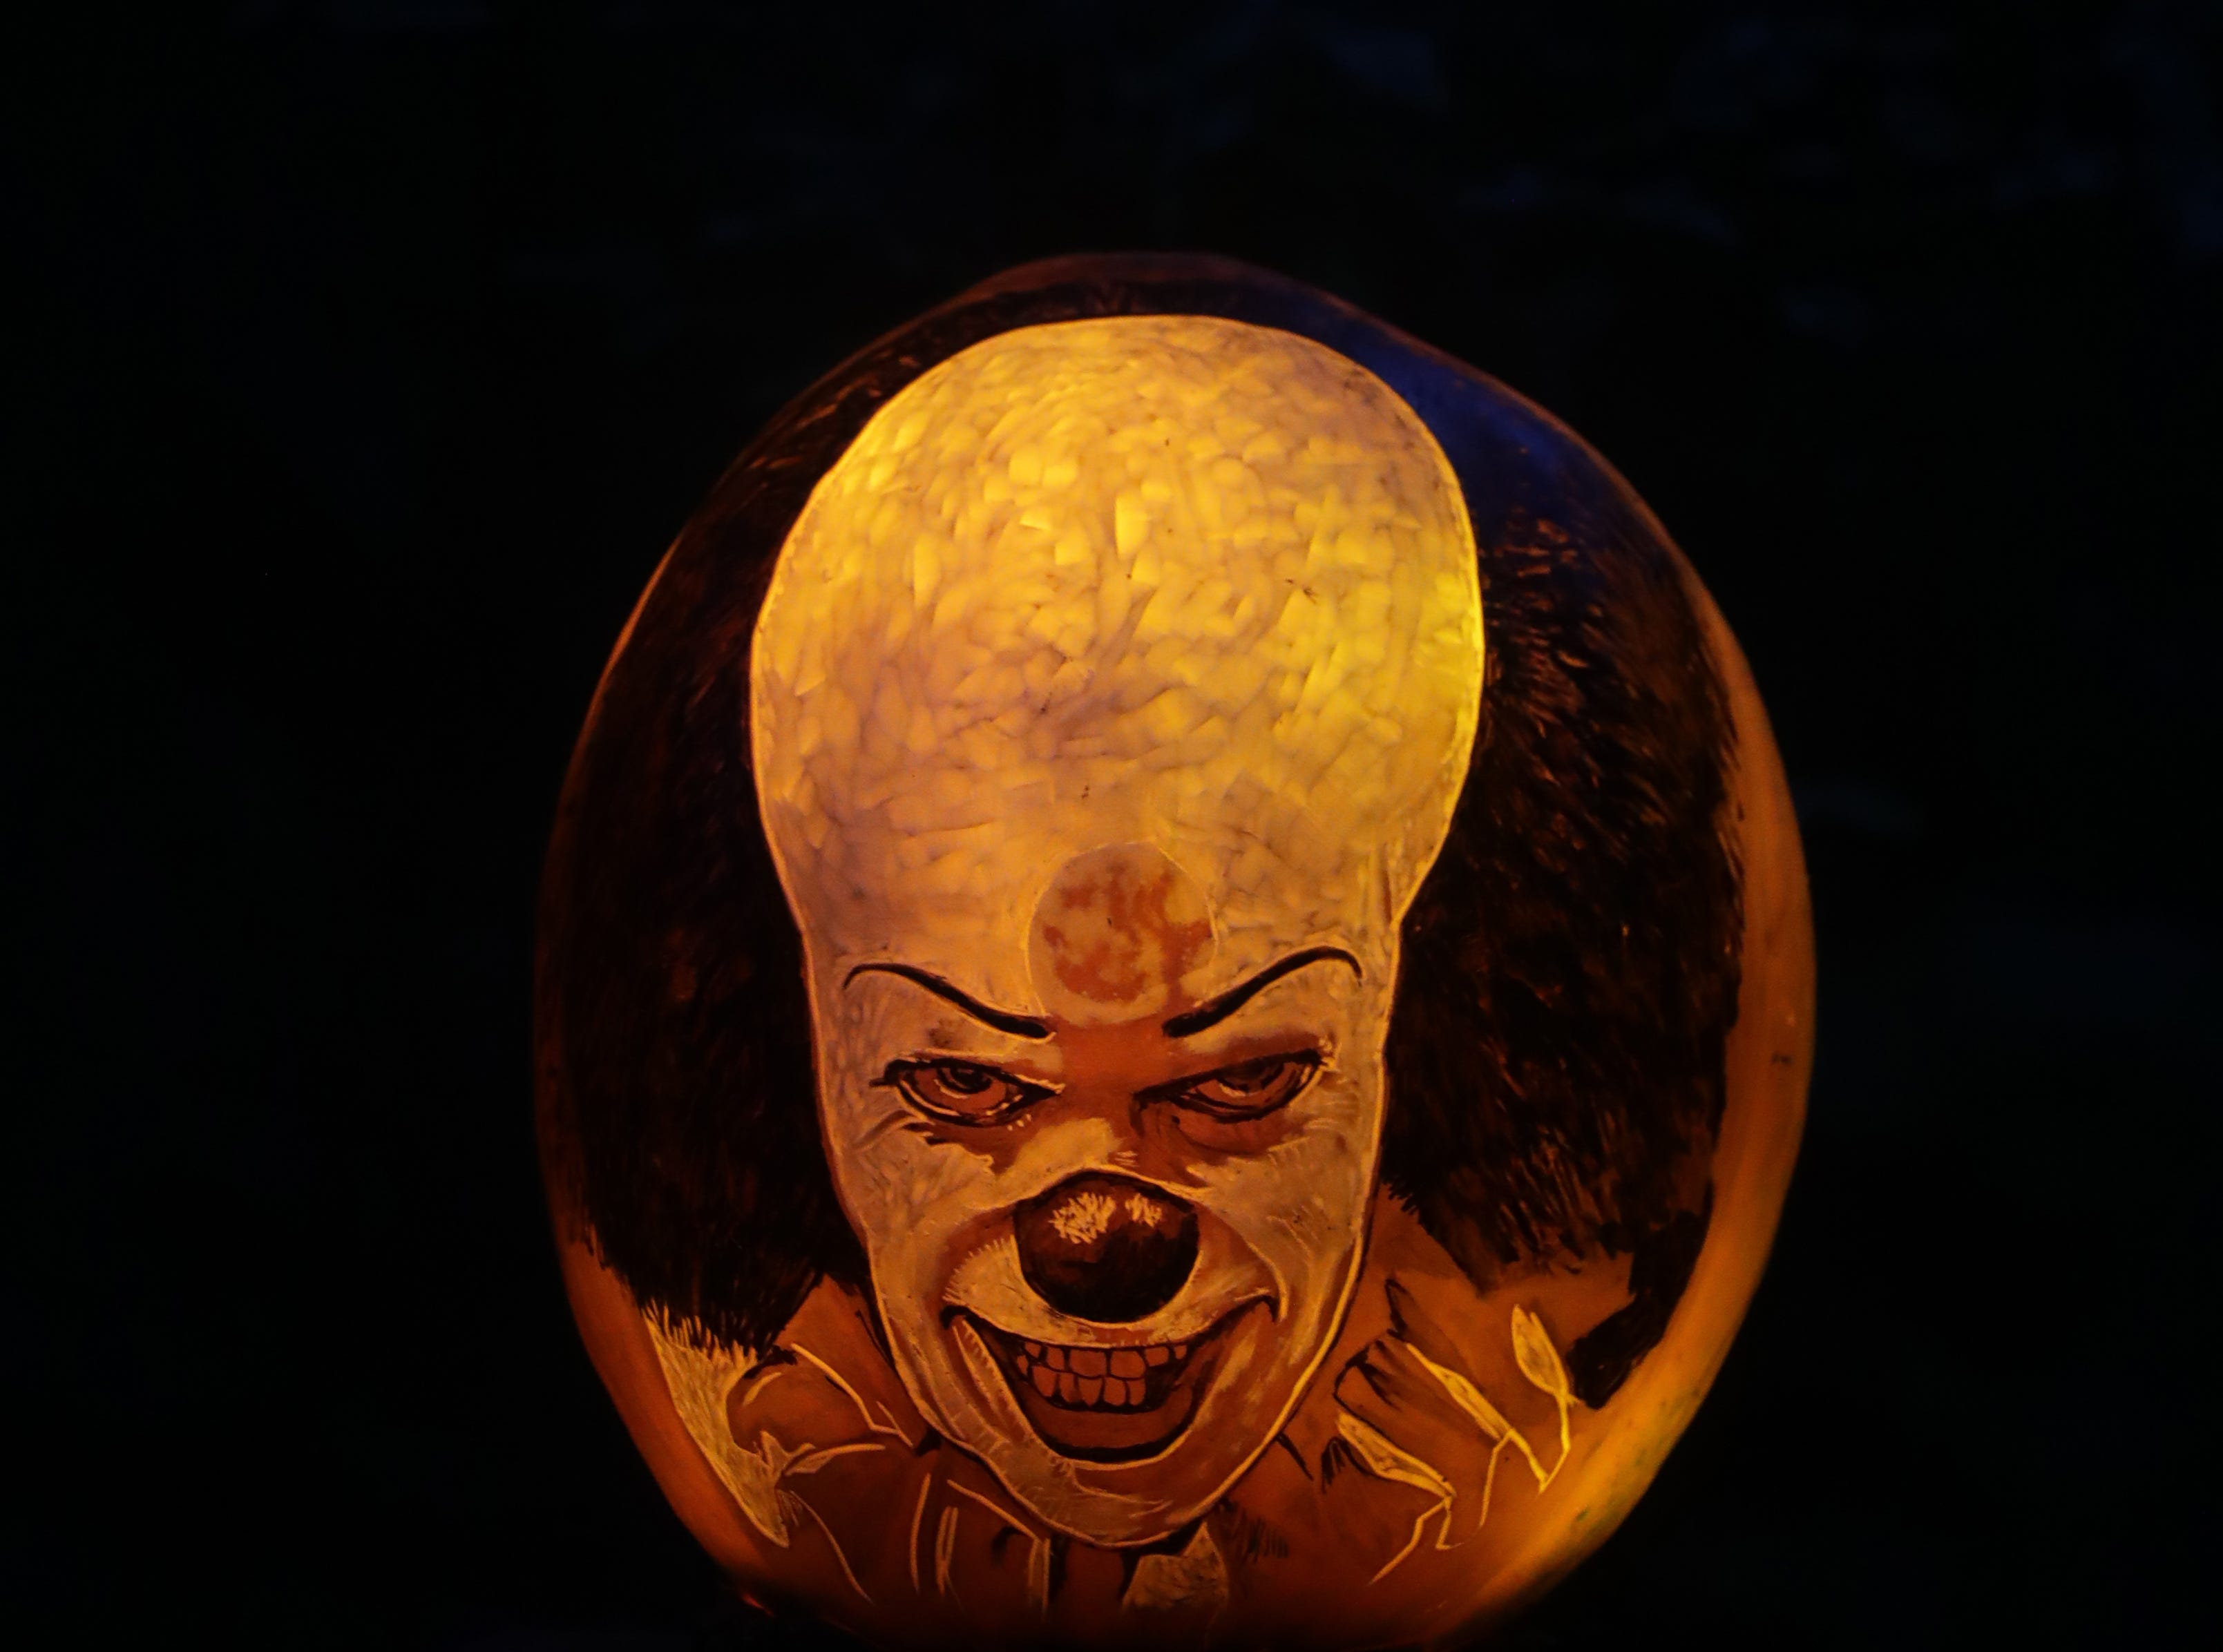 It appears on a pumpkin in the Stephen King section of this year's Jack O' Lantern Spectacular. Oct. 9, 2018